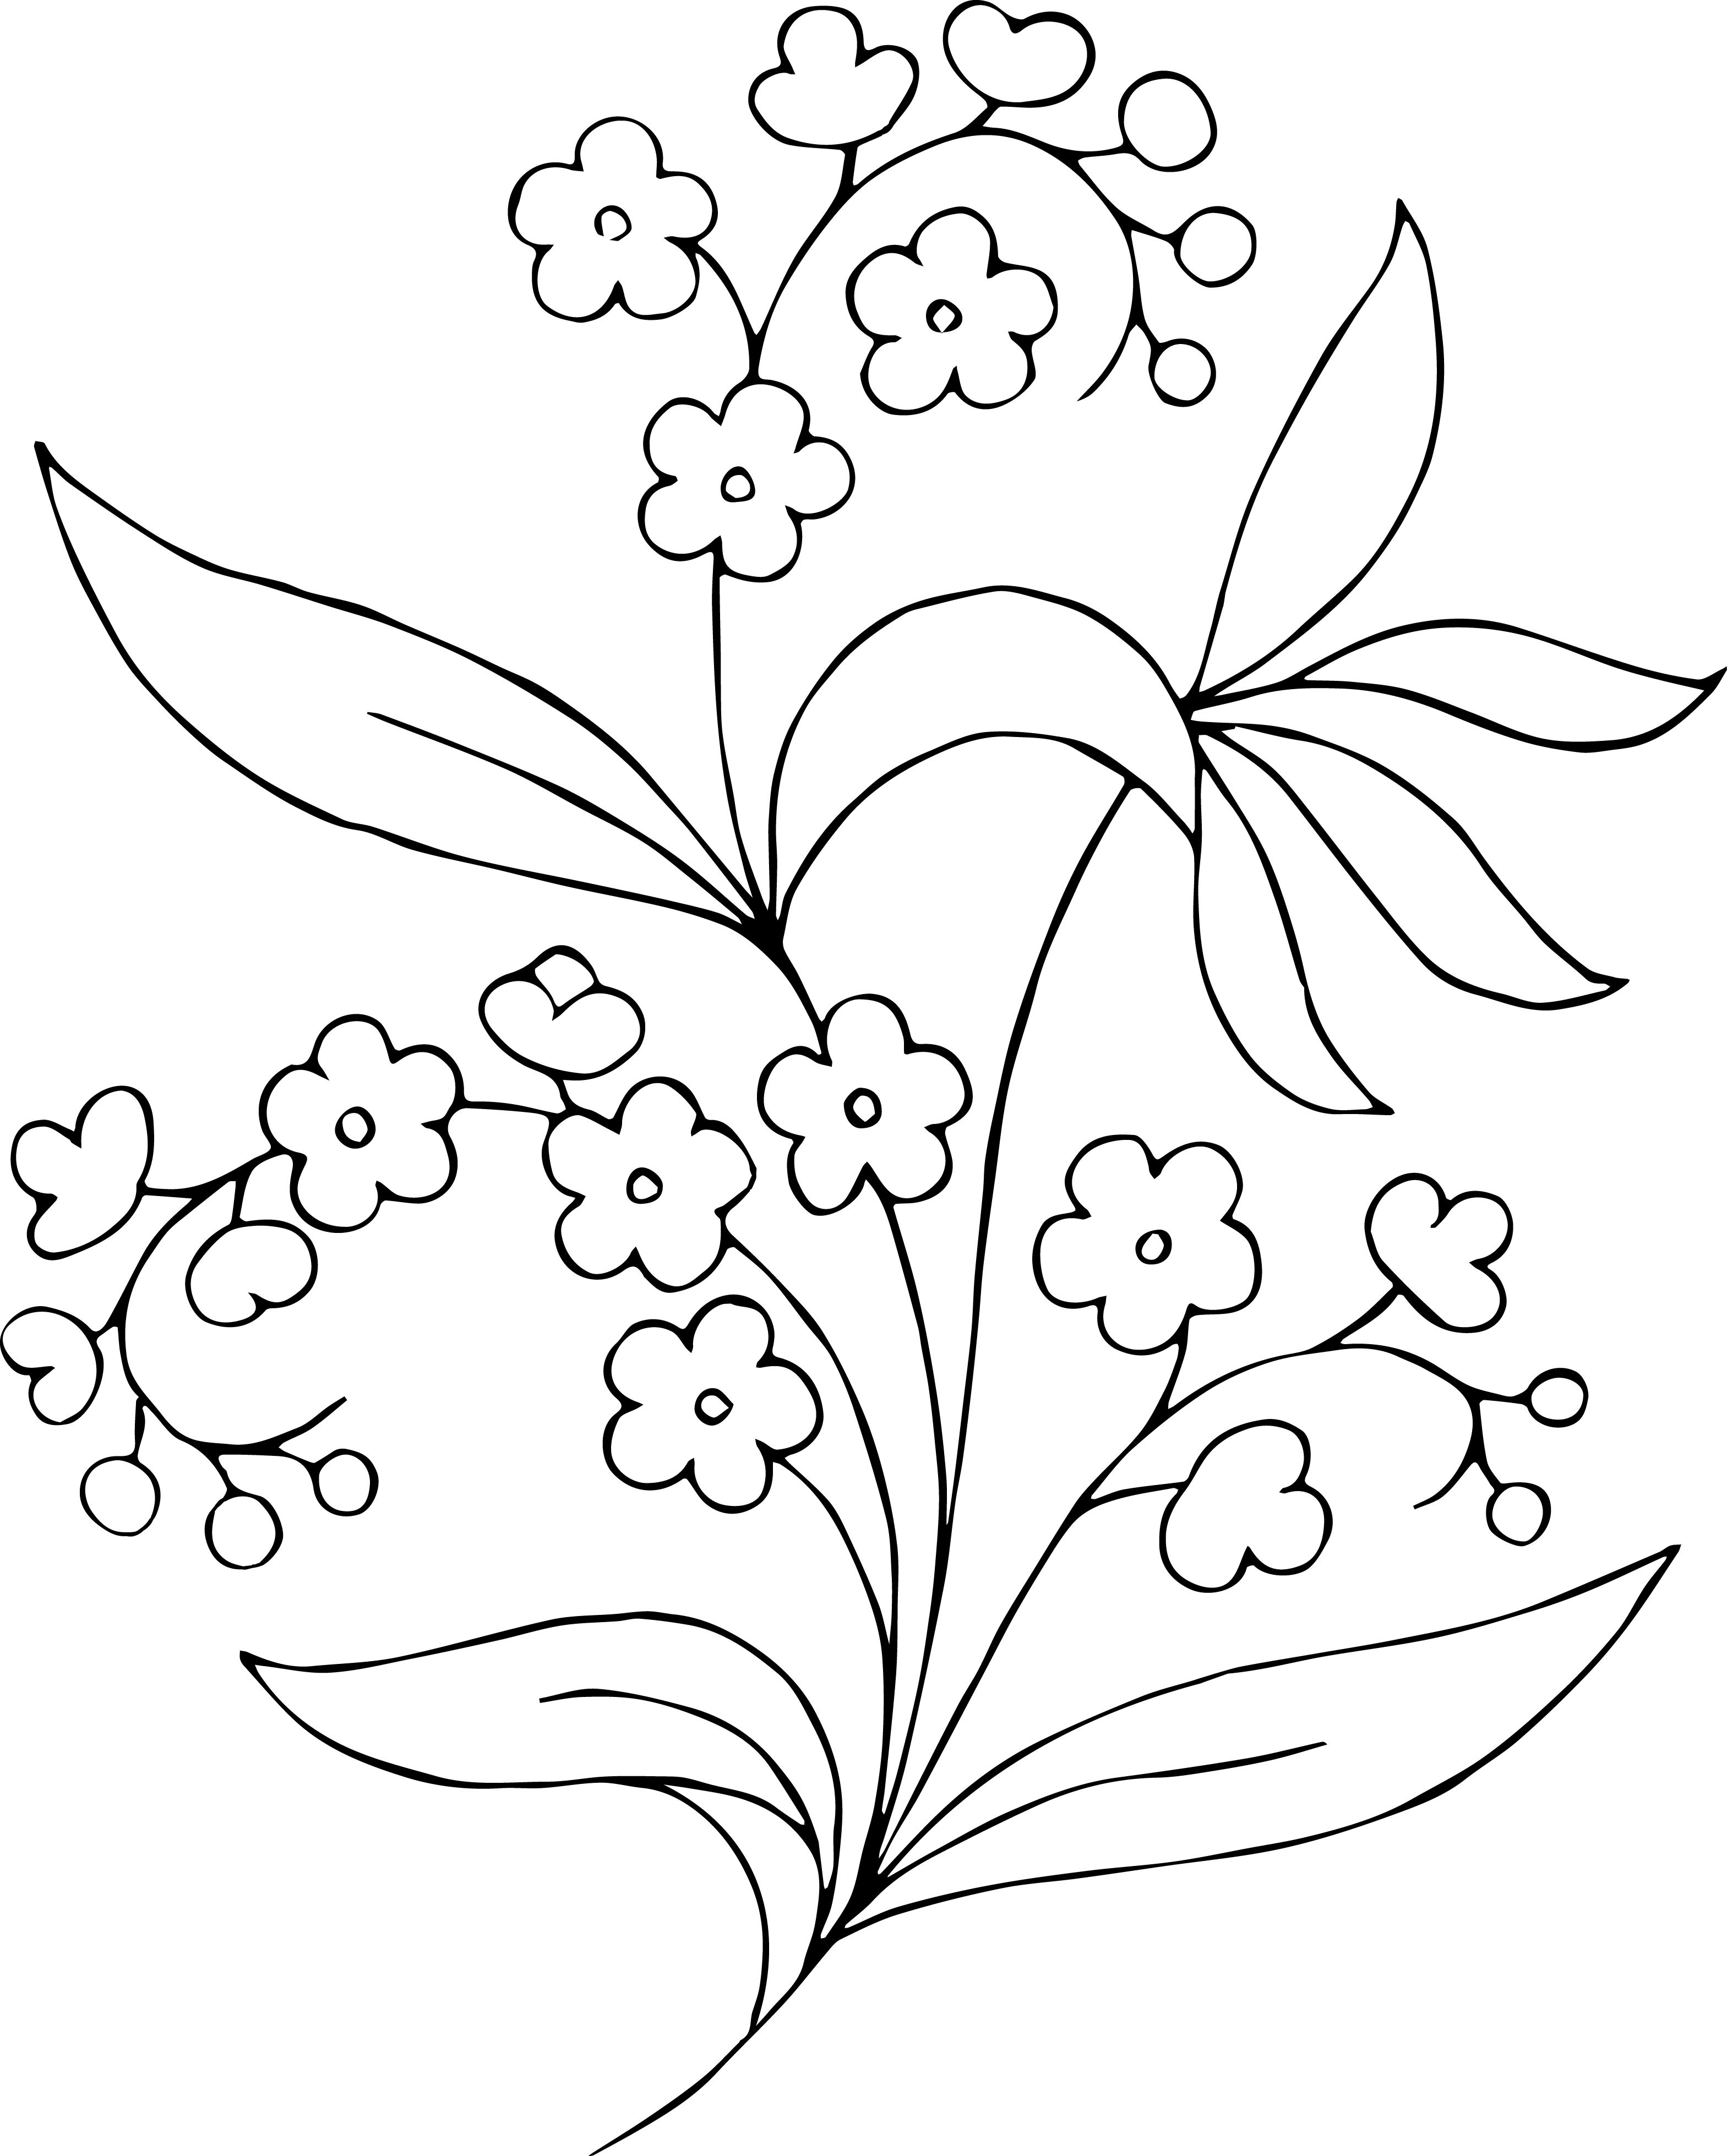 Flower Clipart Black And White Free Clip Art Images 13299 Flower Drawing Hand Embroidery Patterns Free Embroidery Flowers